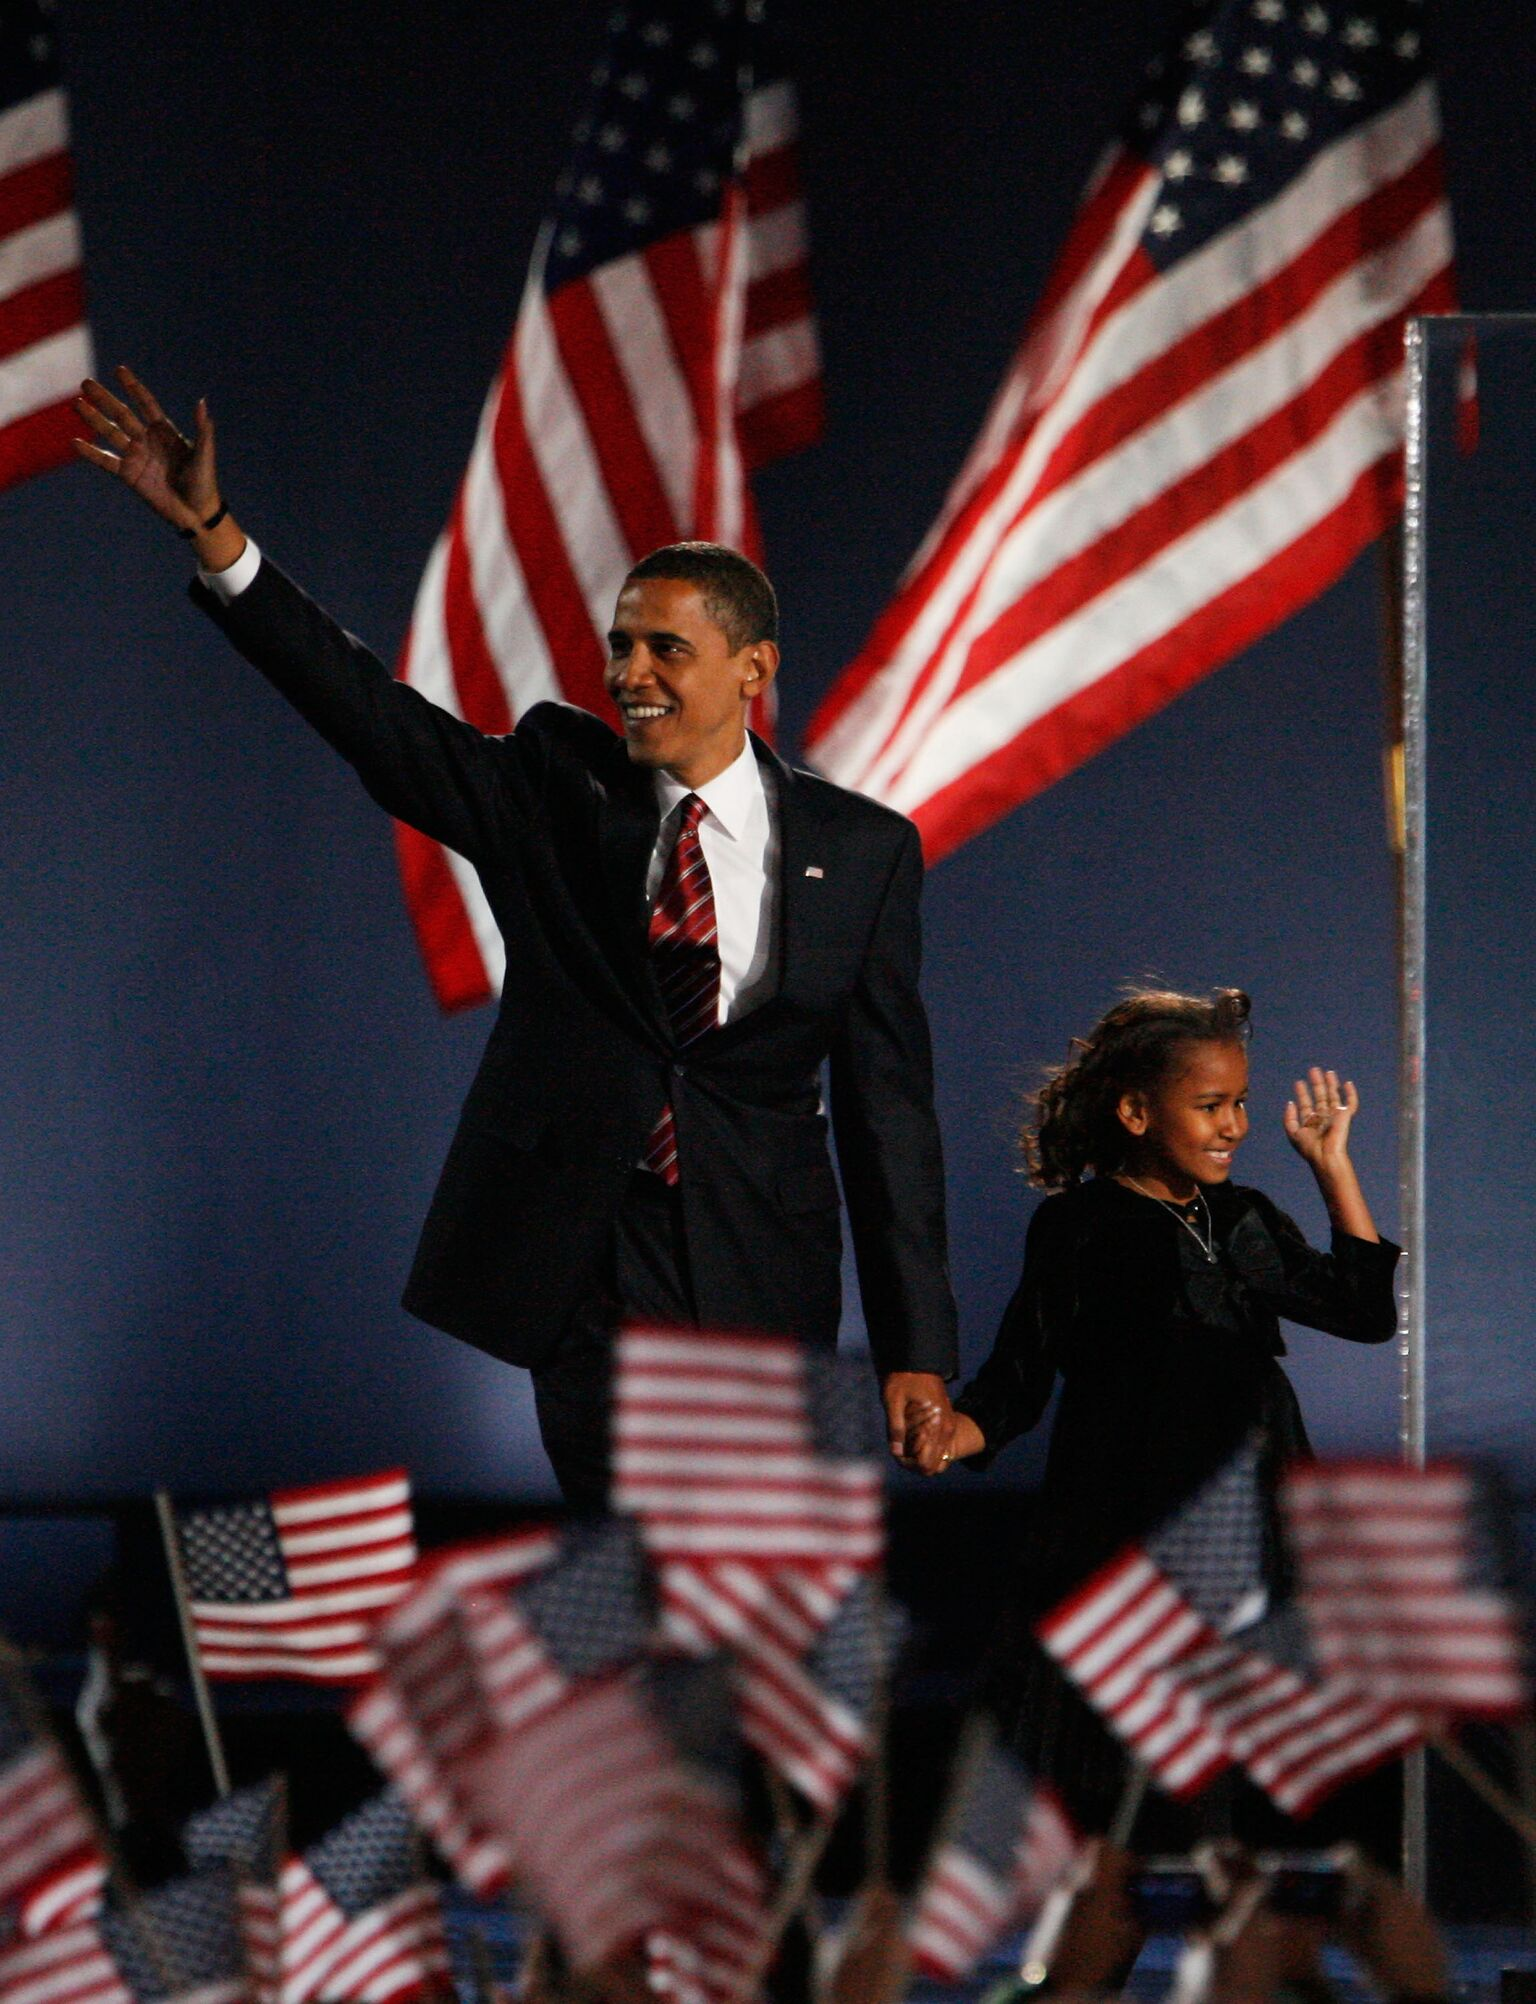 President elect Barack Obama and his daughter Sasha wave to Obama supporters during an election night gathering in Grant Park | Getty Images